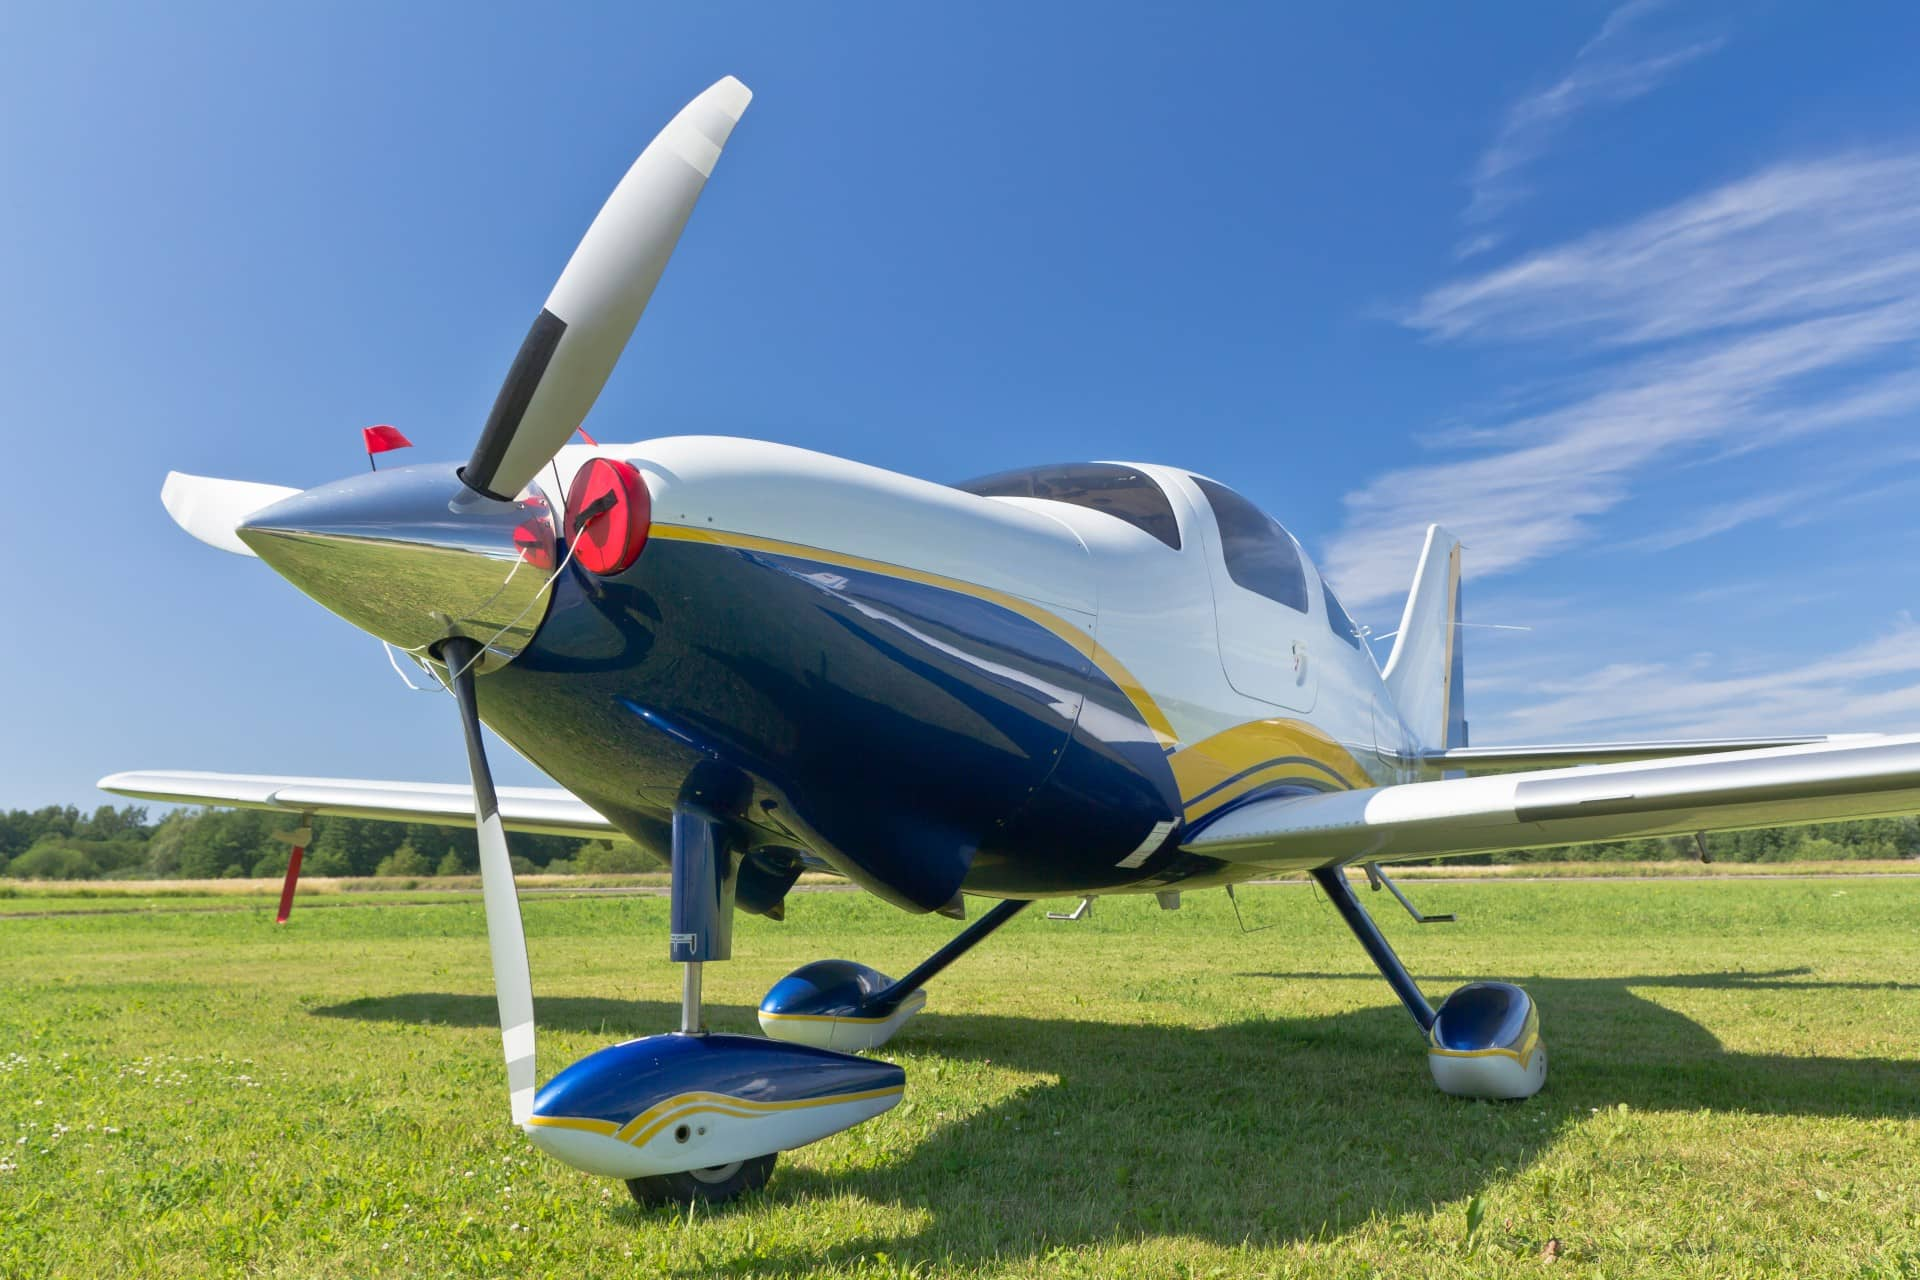 A white and blue plane parked on the grass